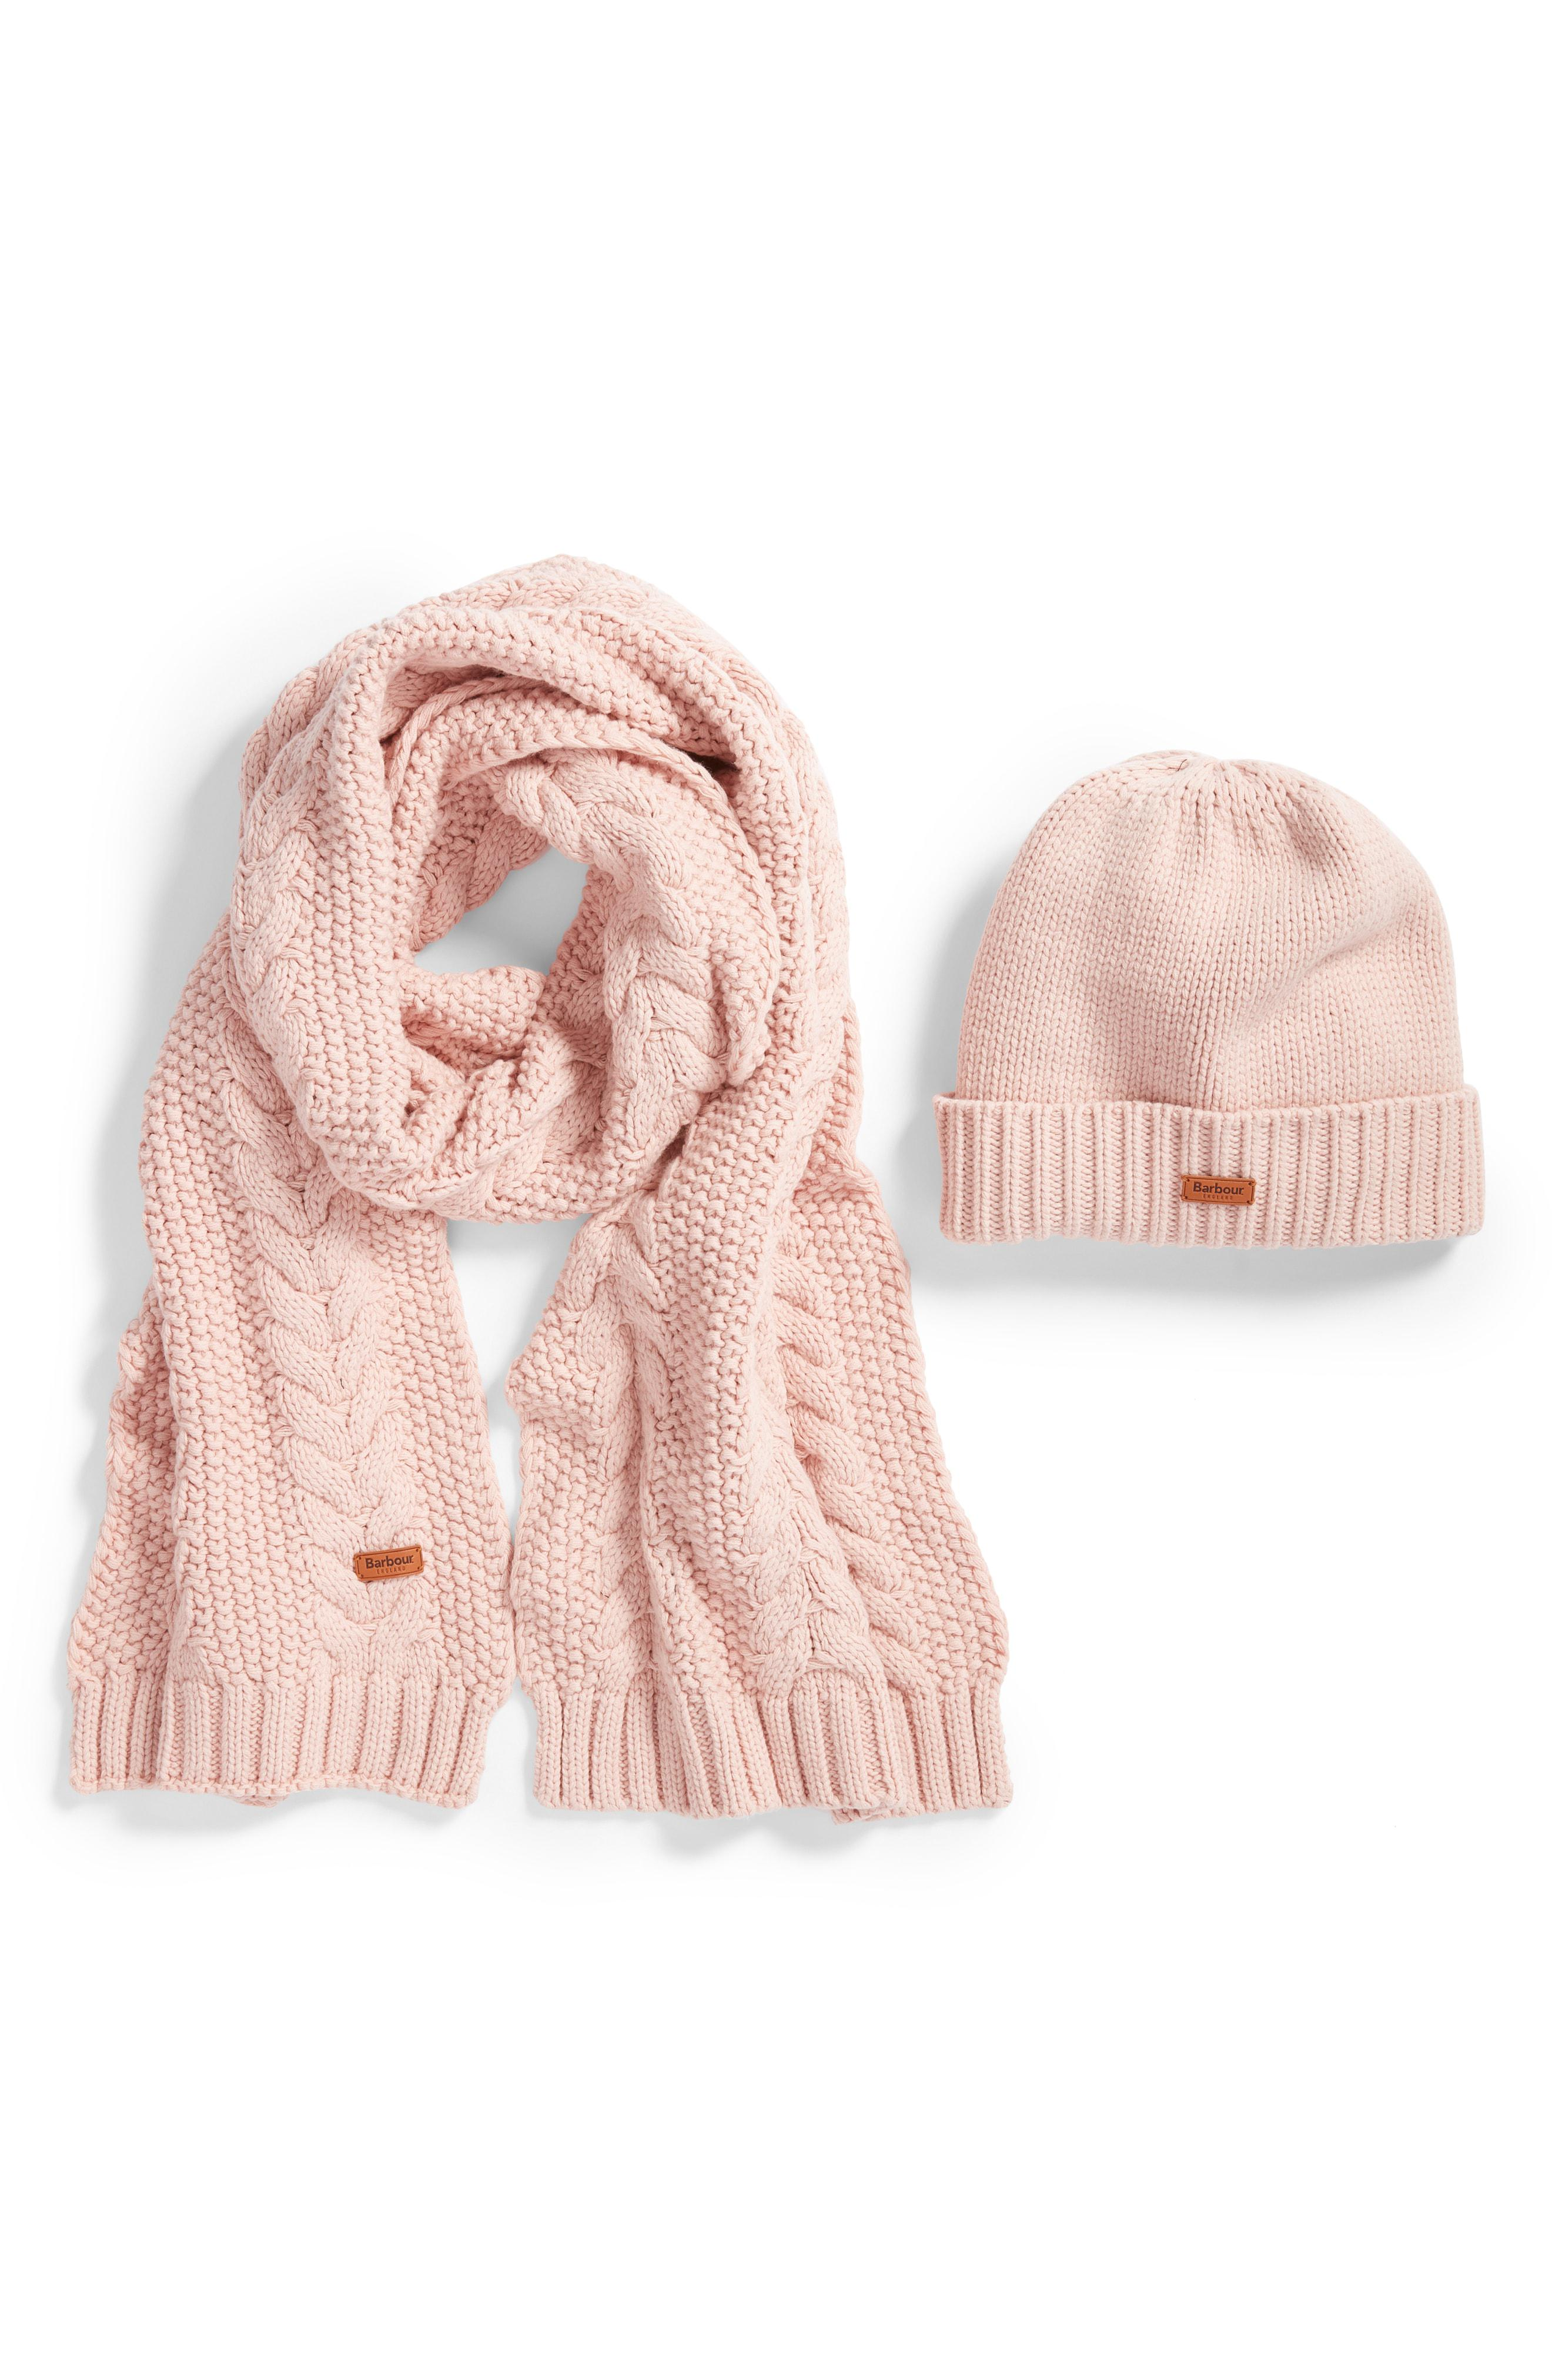 172f47a4237 Barbour - Pink Cable Knit Hat   Scarf Set - - Lyst. View fullscreen